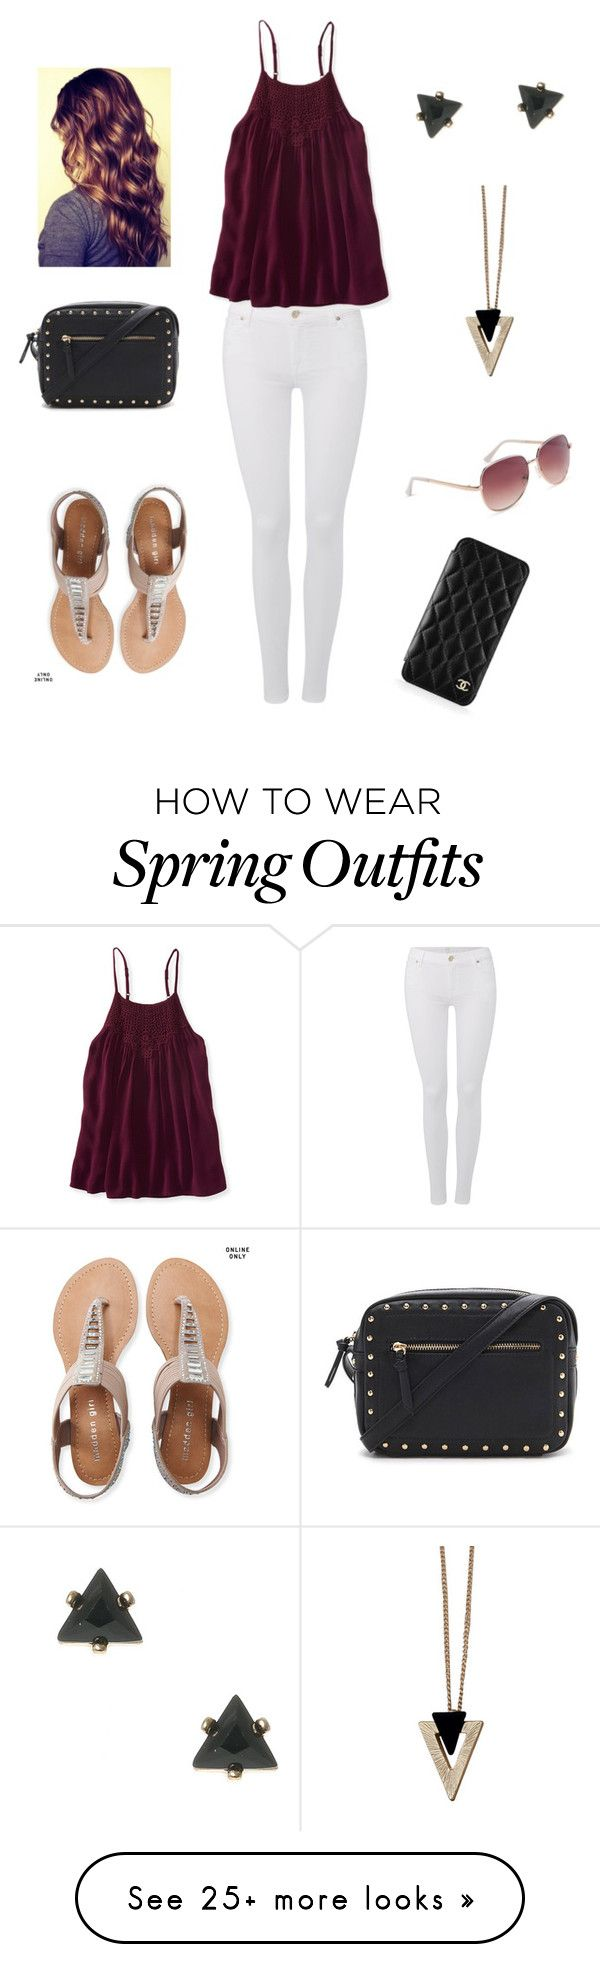 """mall outfit"" by marilyng341 on Polyvore featuring 7 For All Mankind, Aéropostale, Forever 21, Chicnova Fashion and Chanel"